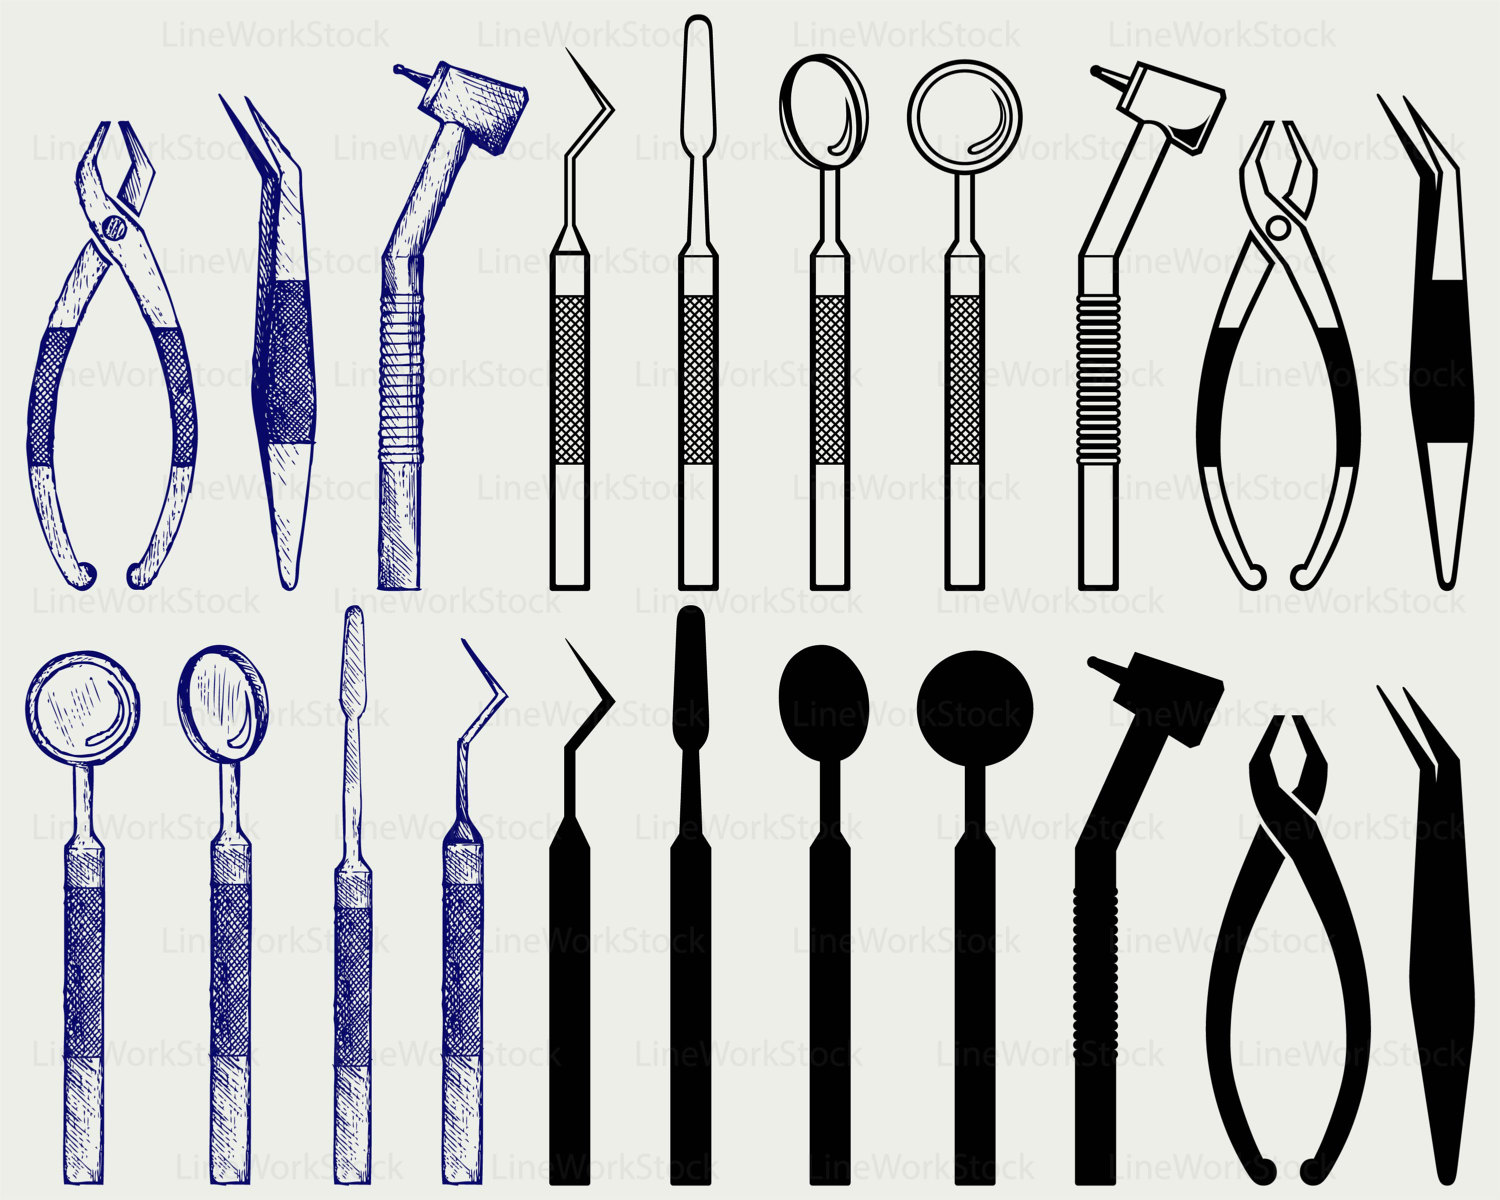 Dental equipment svg,dental clipart,dental svg,dental silhouette.